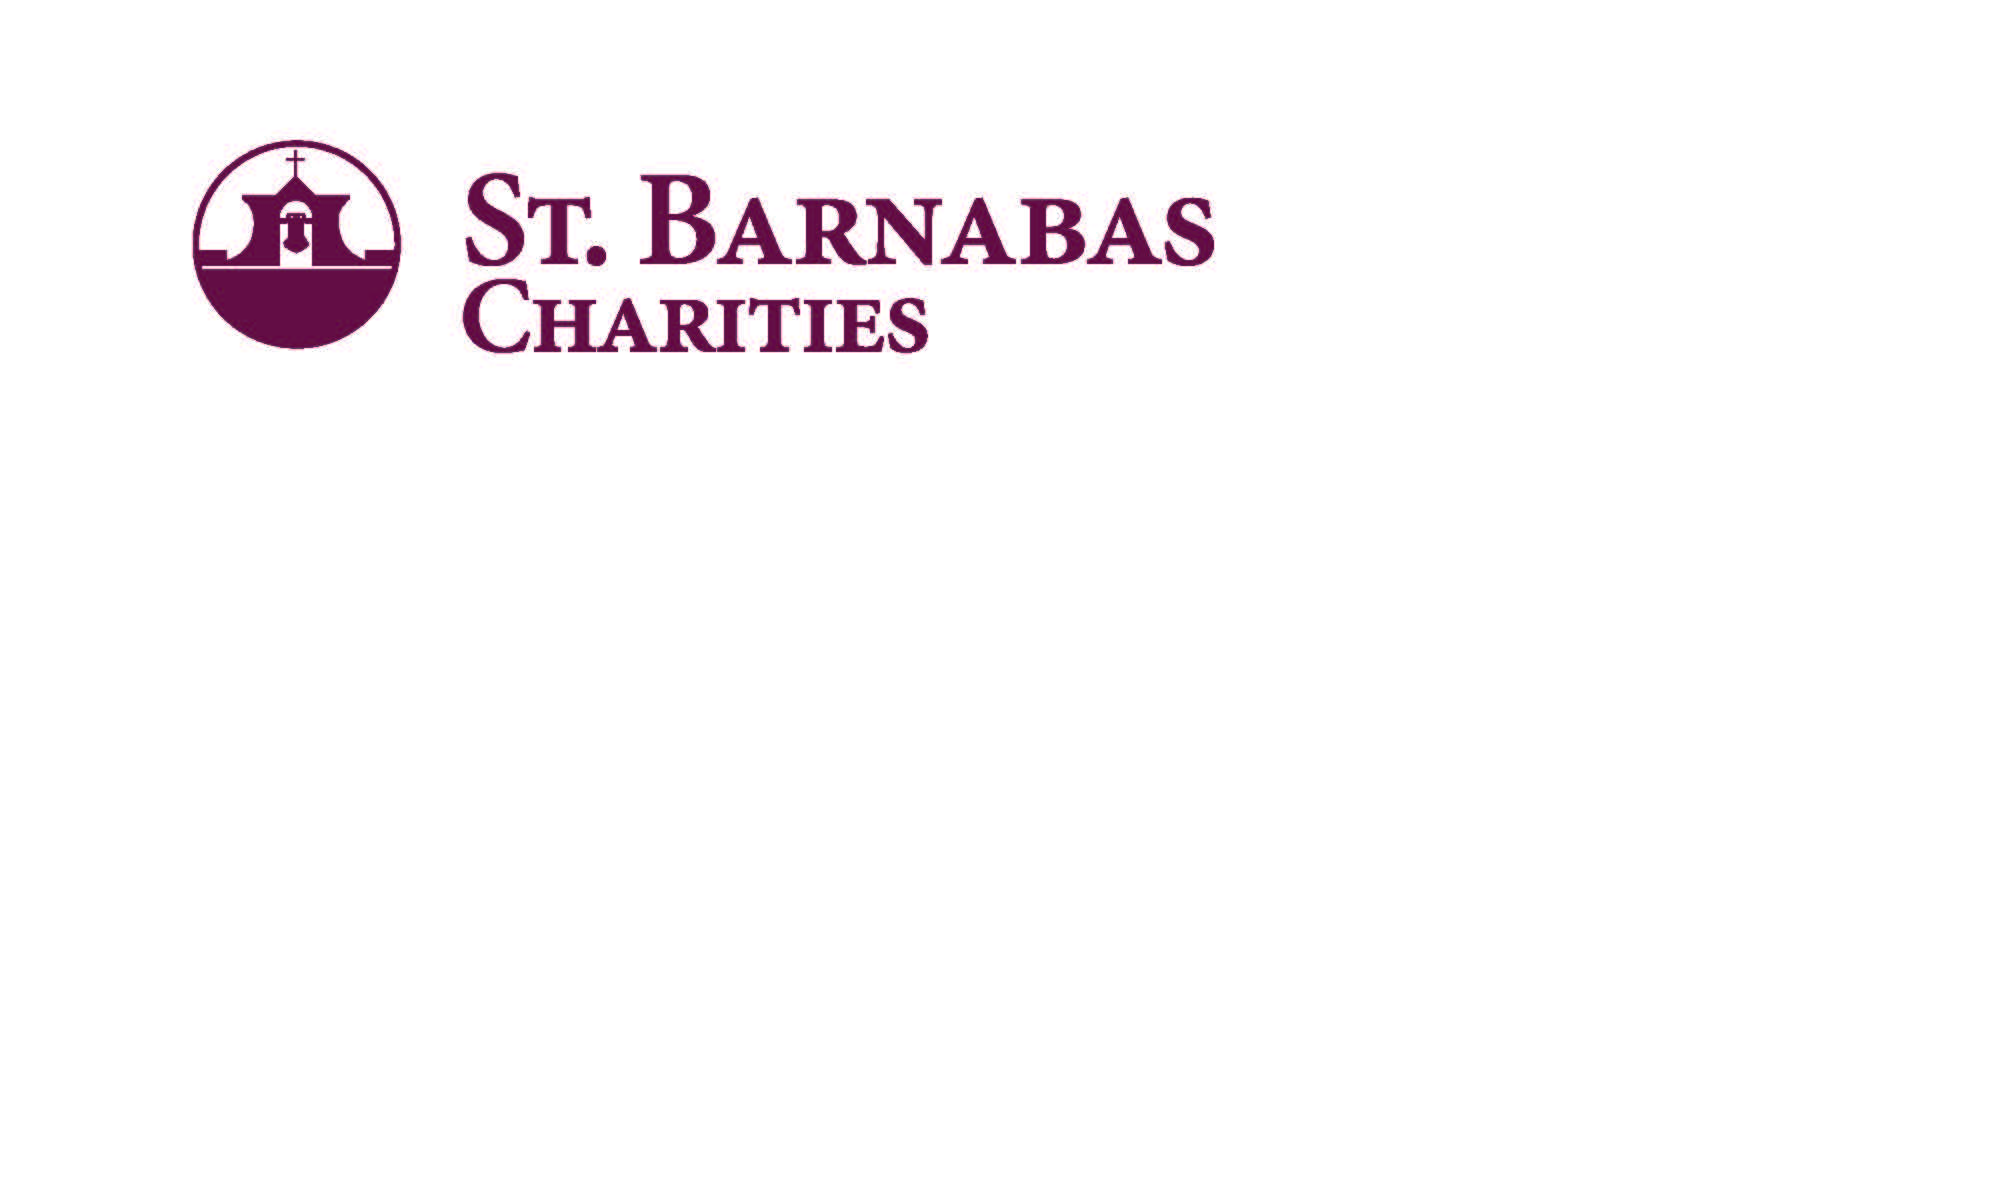 St. Barnabas Charities Logo - two lines